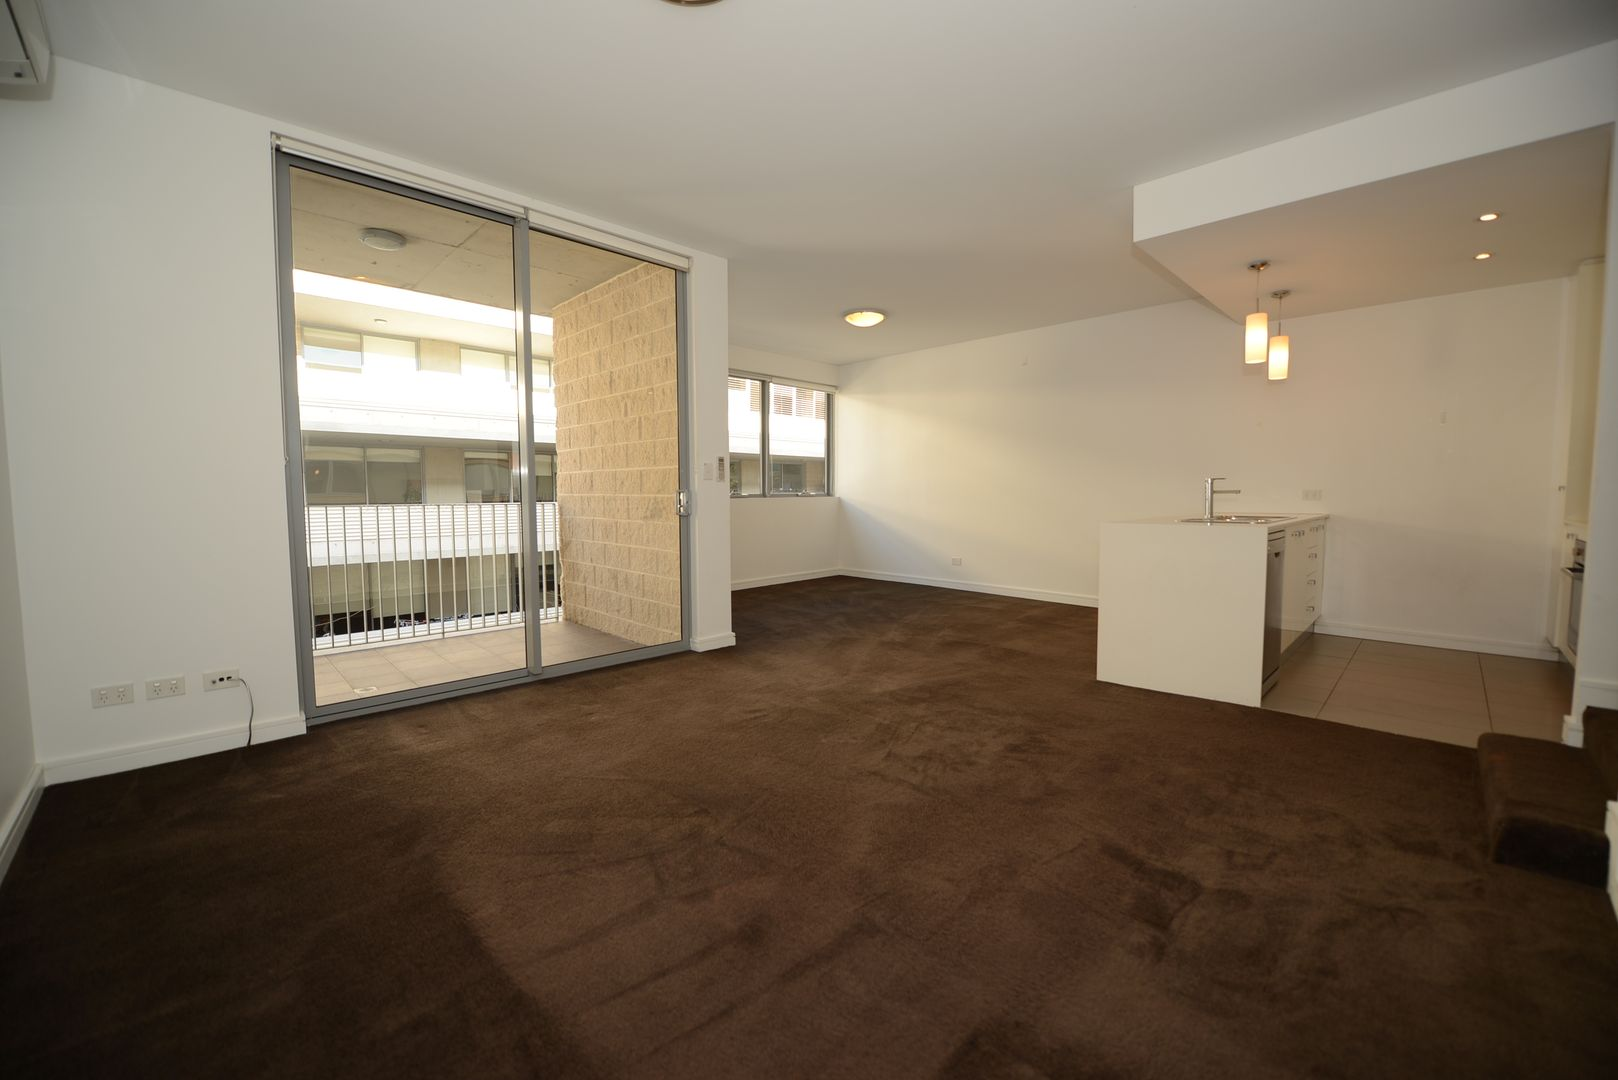 23/525 Illawarra, Marrickville NSW 2204, Image 2